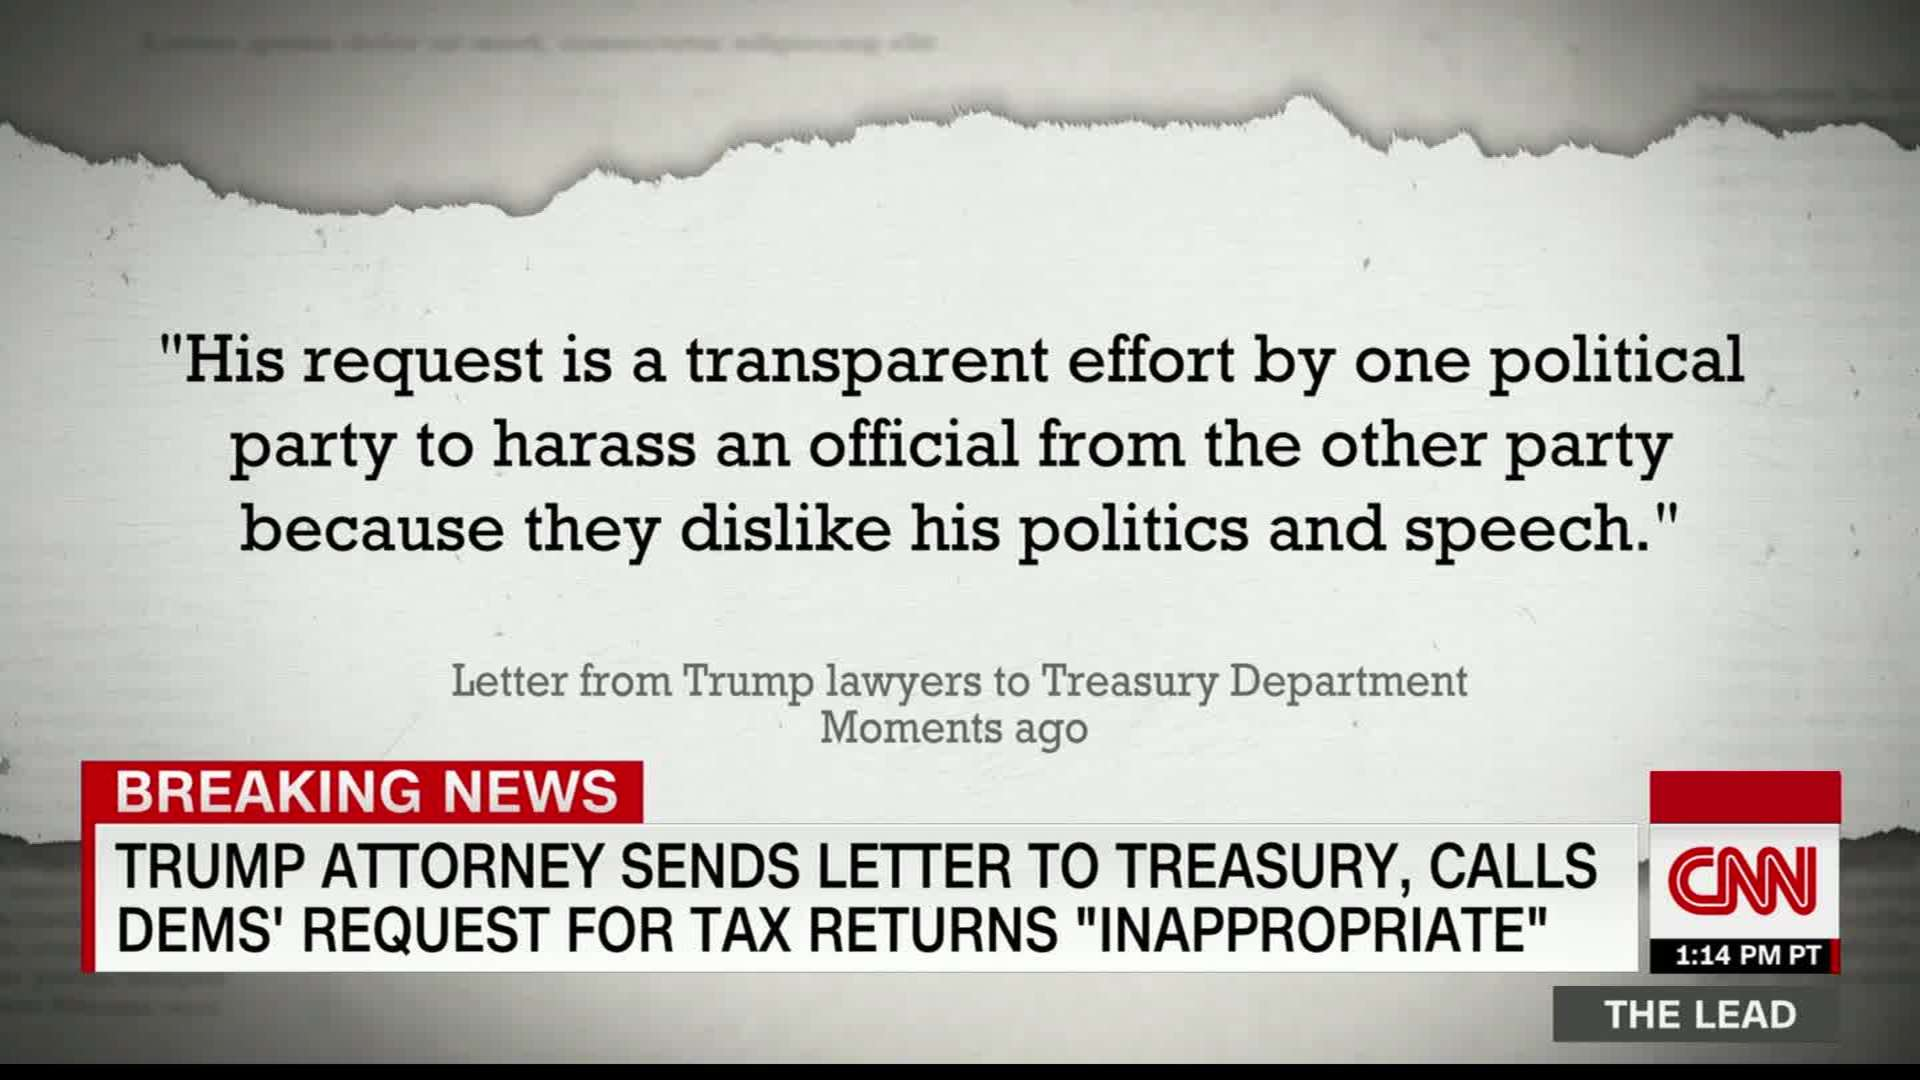 Trump S Lawyers Call Request For Tax Returns Inappropriate